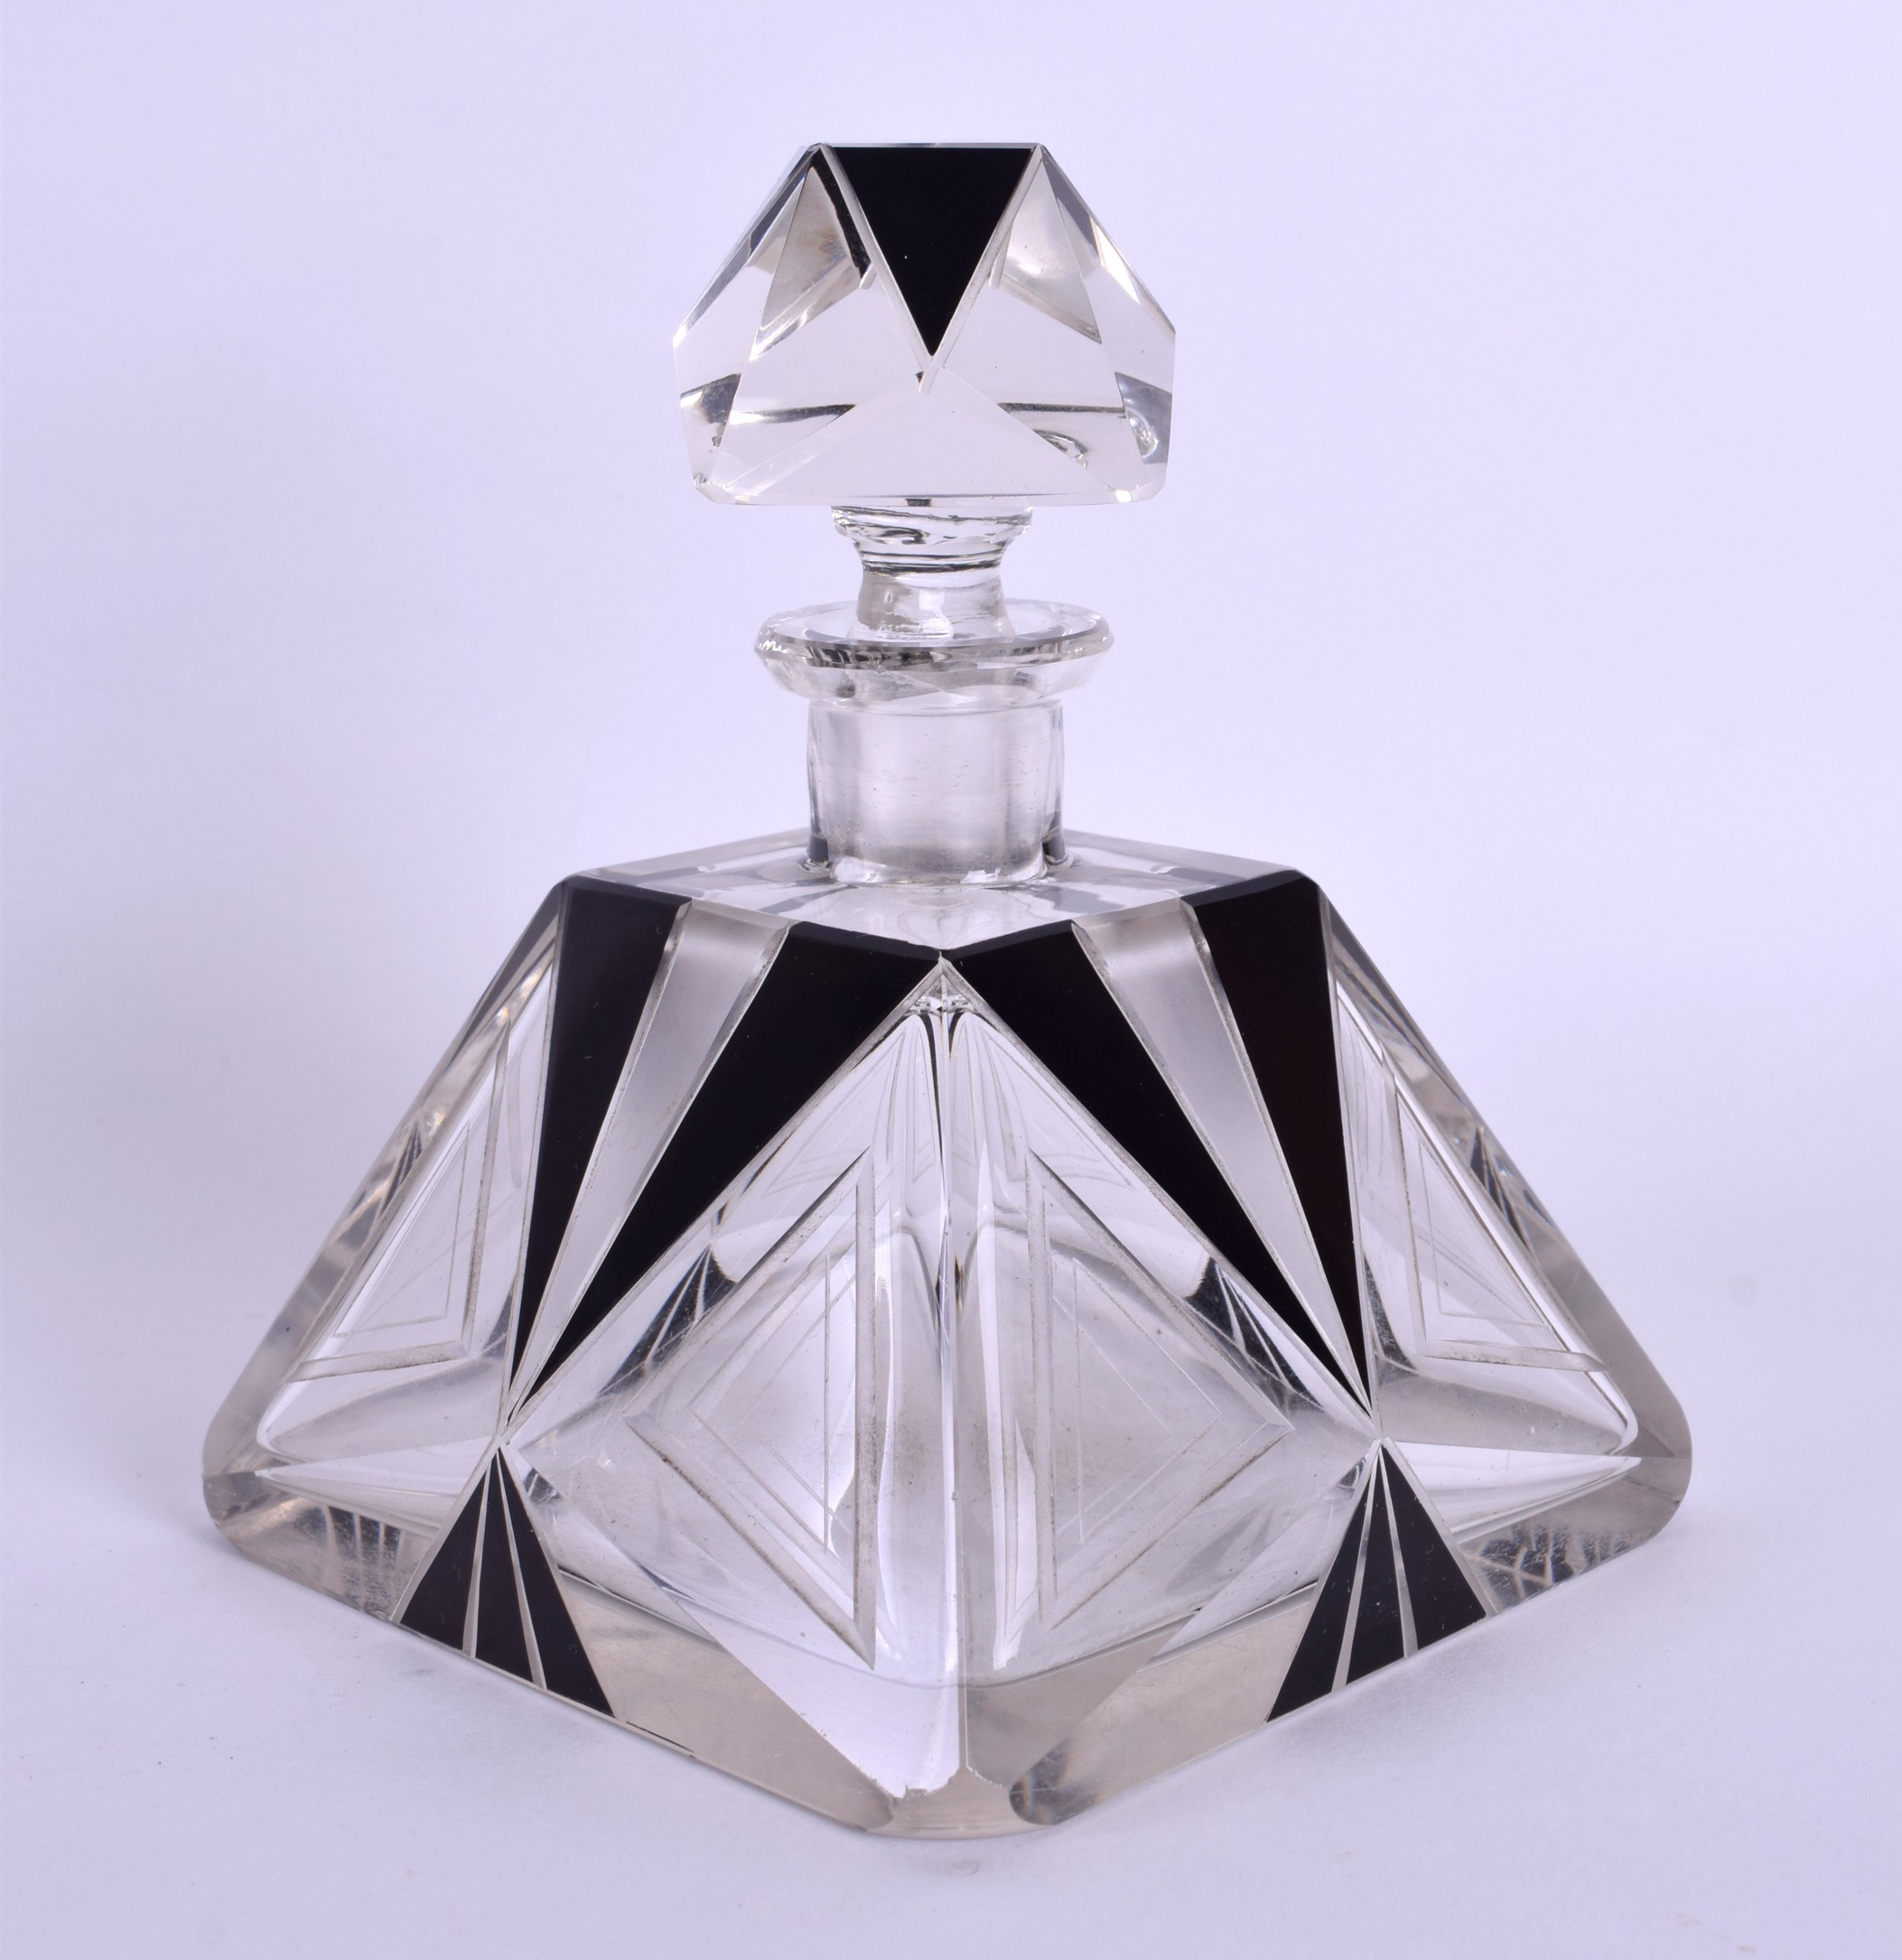 Lot 22 - A FRENCH ART DECO BLACK AND CLEAR GLASS SCENT BOTTLE. 14 cm x 10 cm.